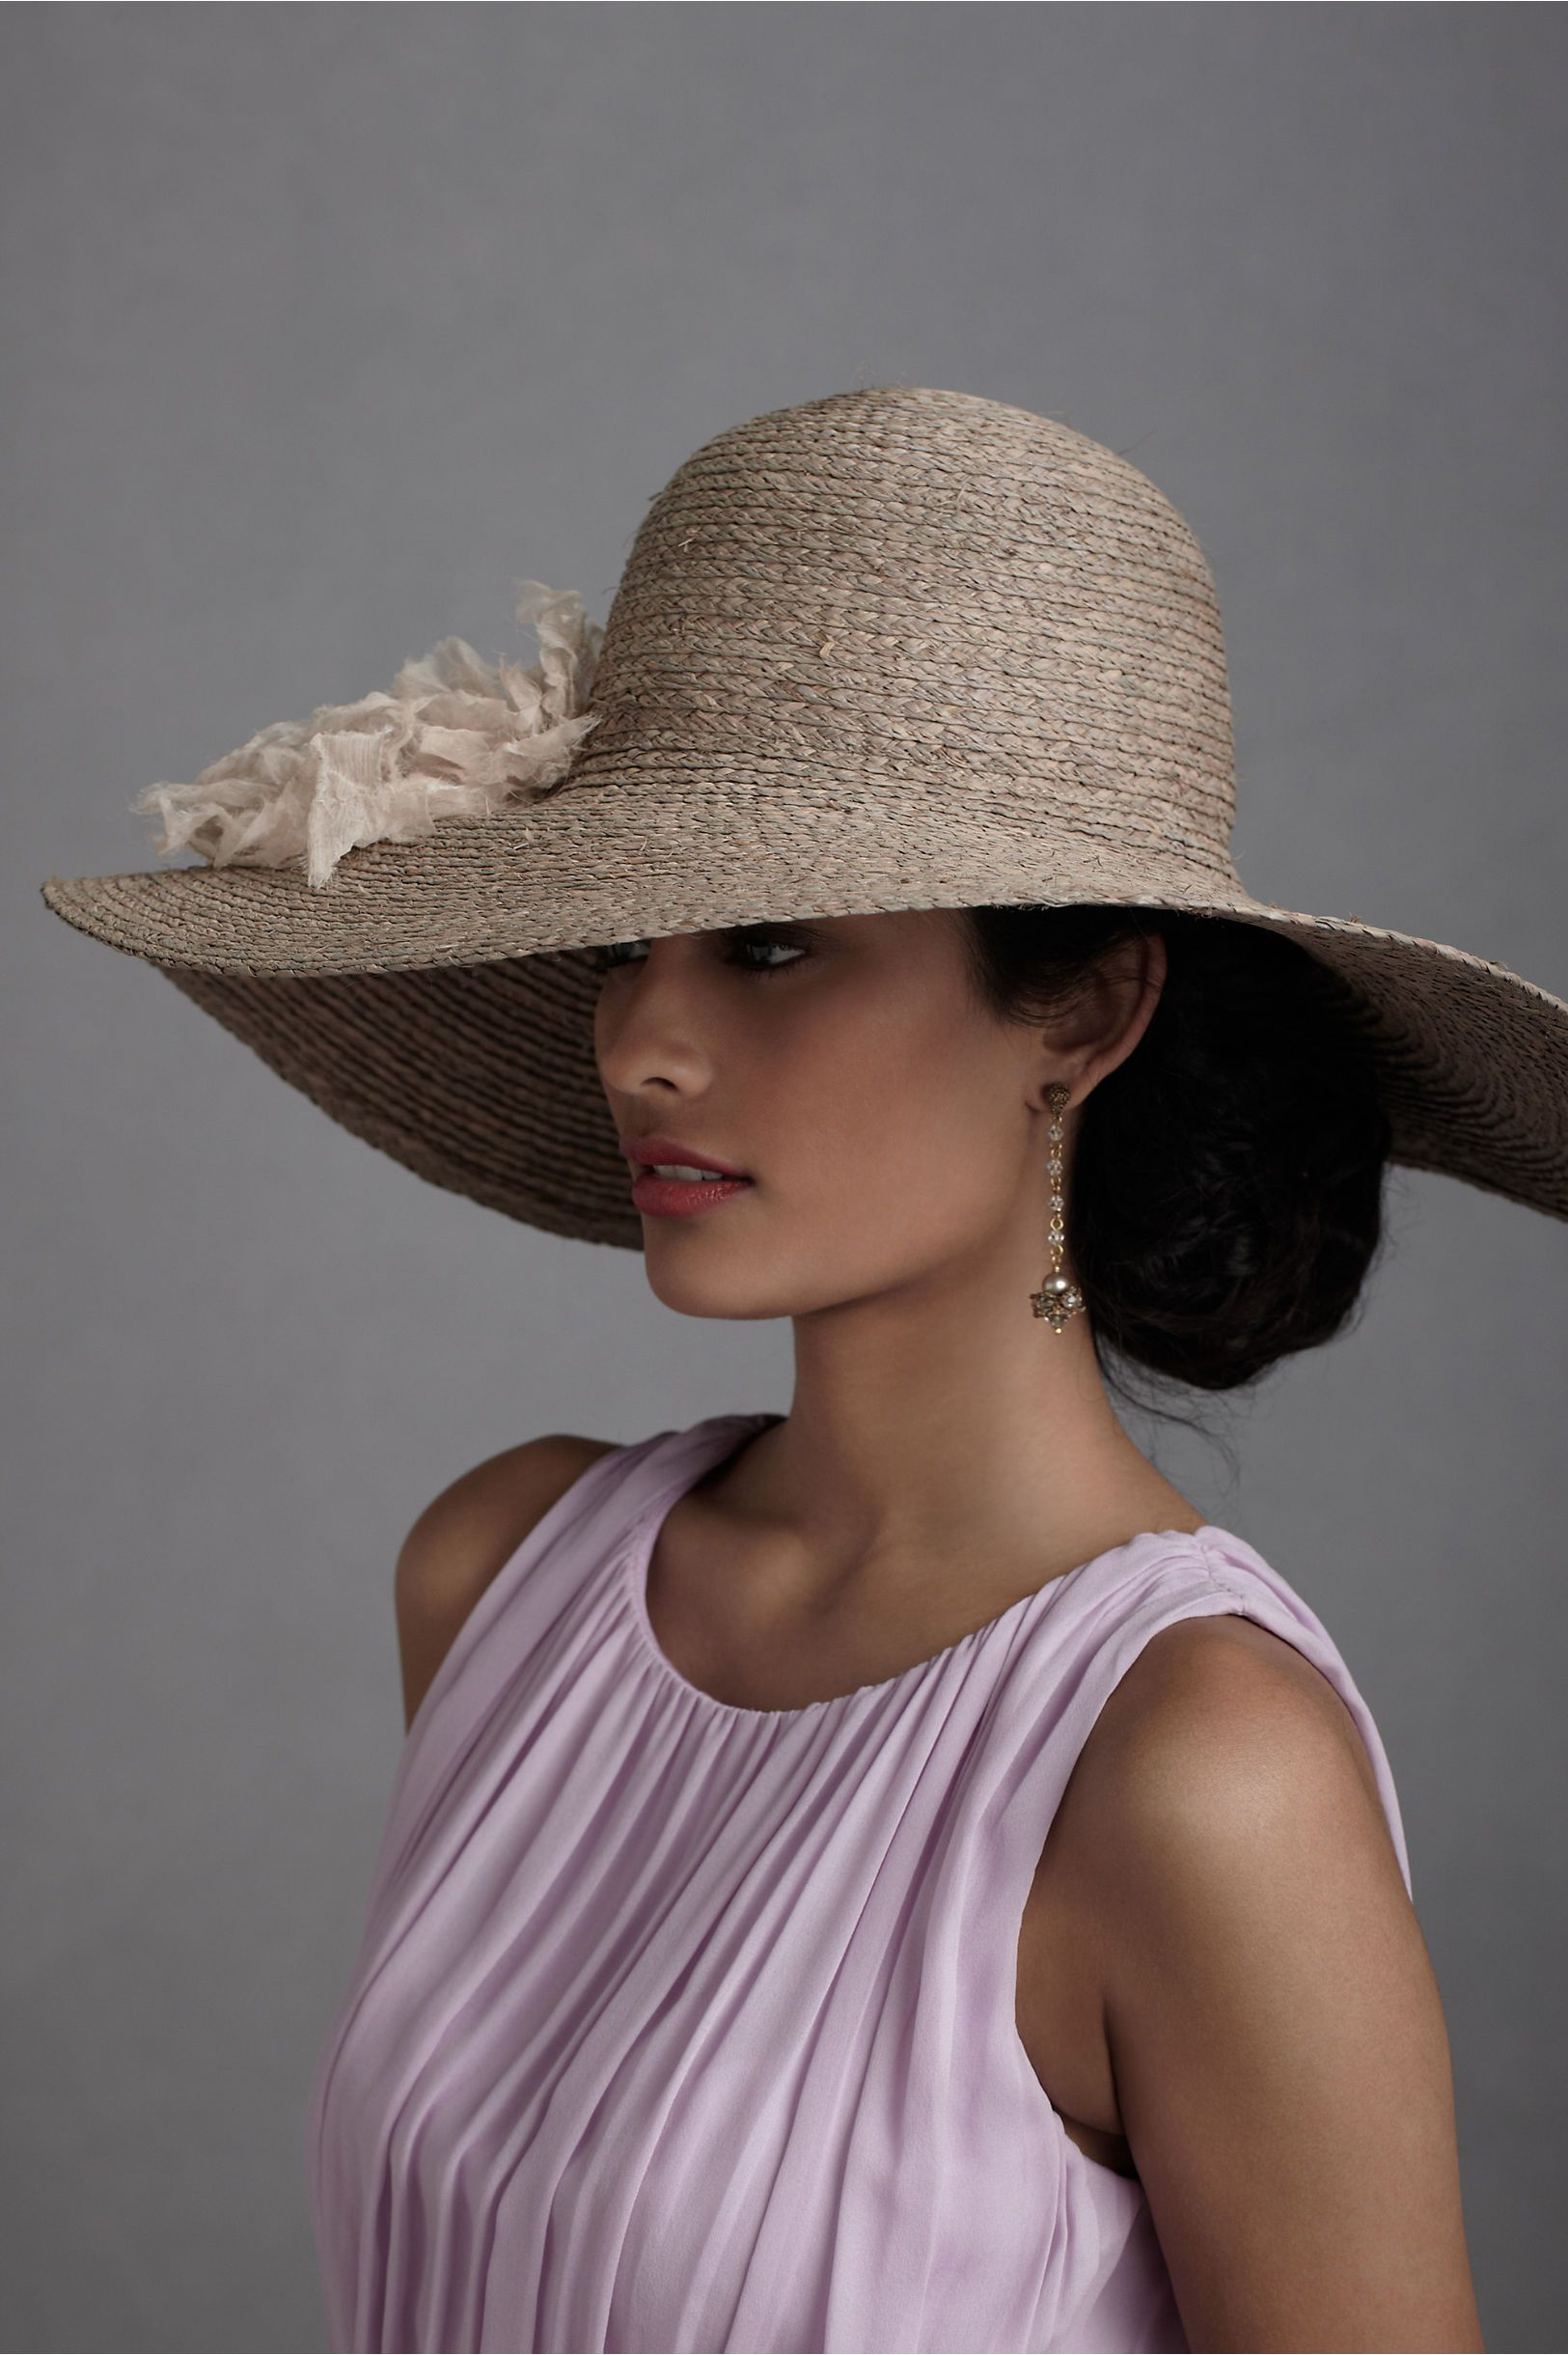 d7d14f1ff505e Tranquil Day Hat. Natural raffia woven into a classic sunhat is adorned  with relaxed pompoms of neutral chiffon